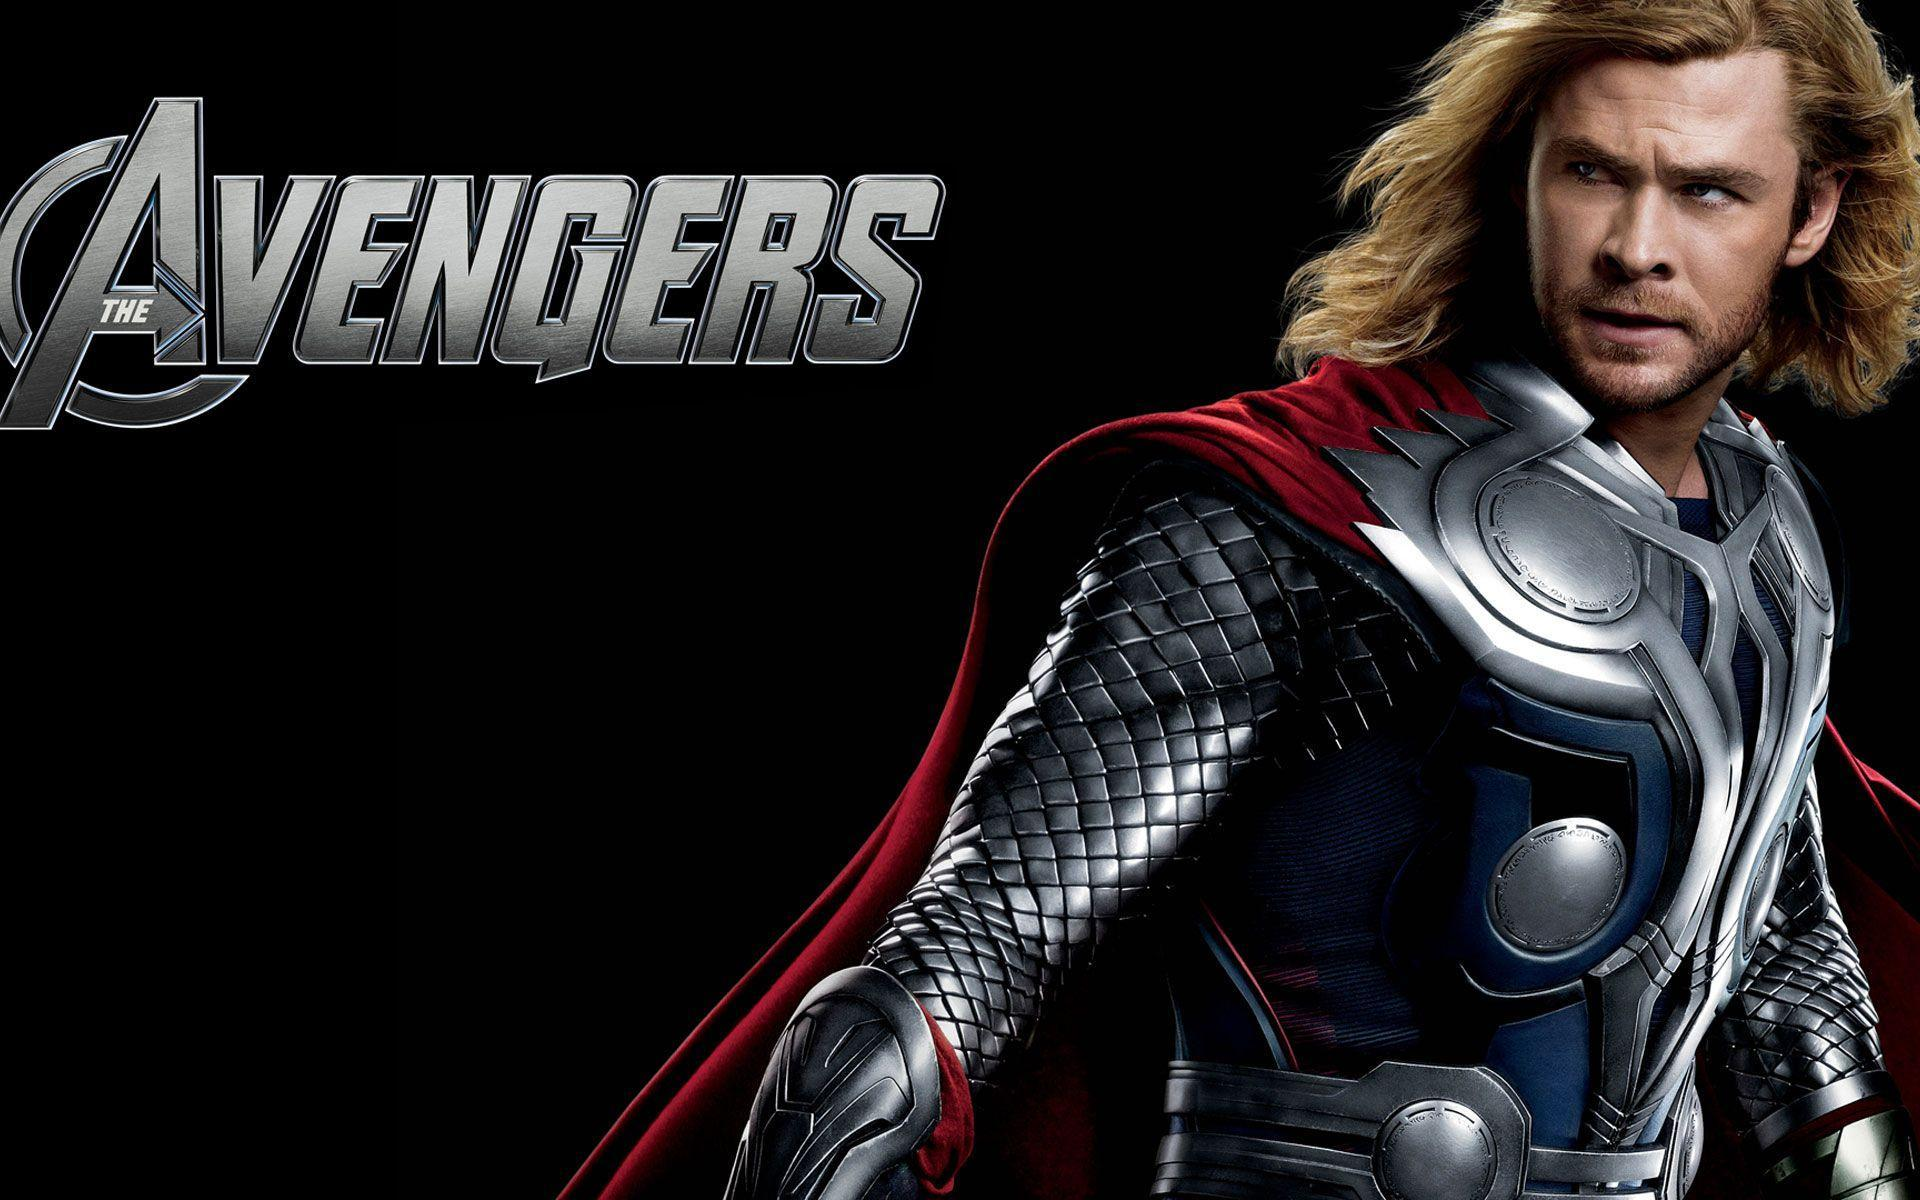 Movies Avengers Thor Wallpapers Wallpaper Hd Hdmovie Trailers ...